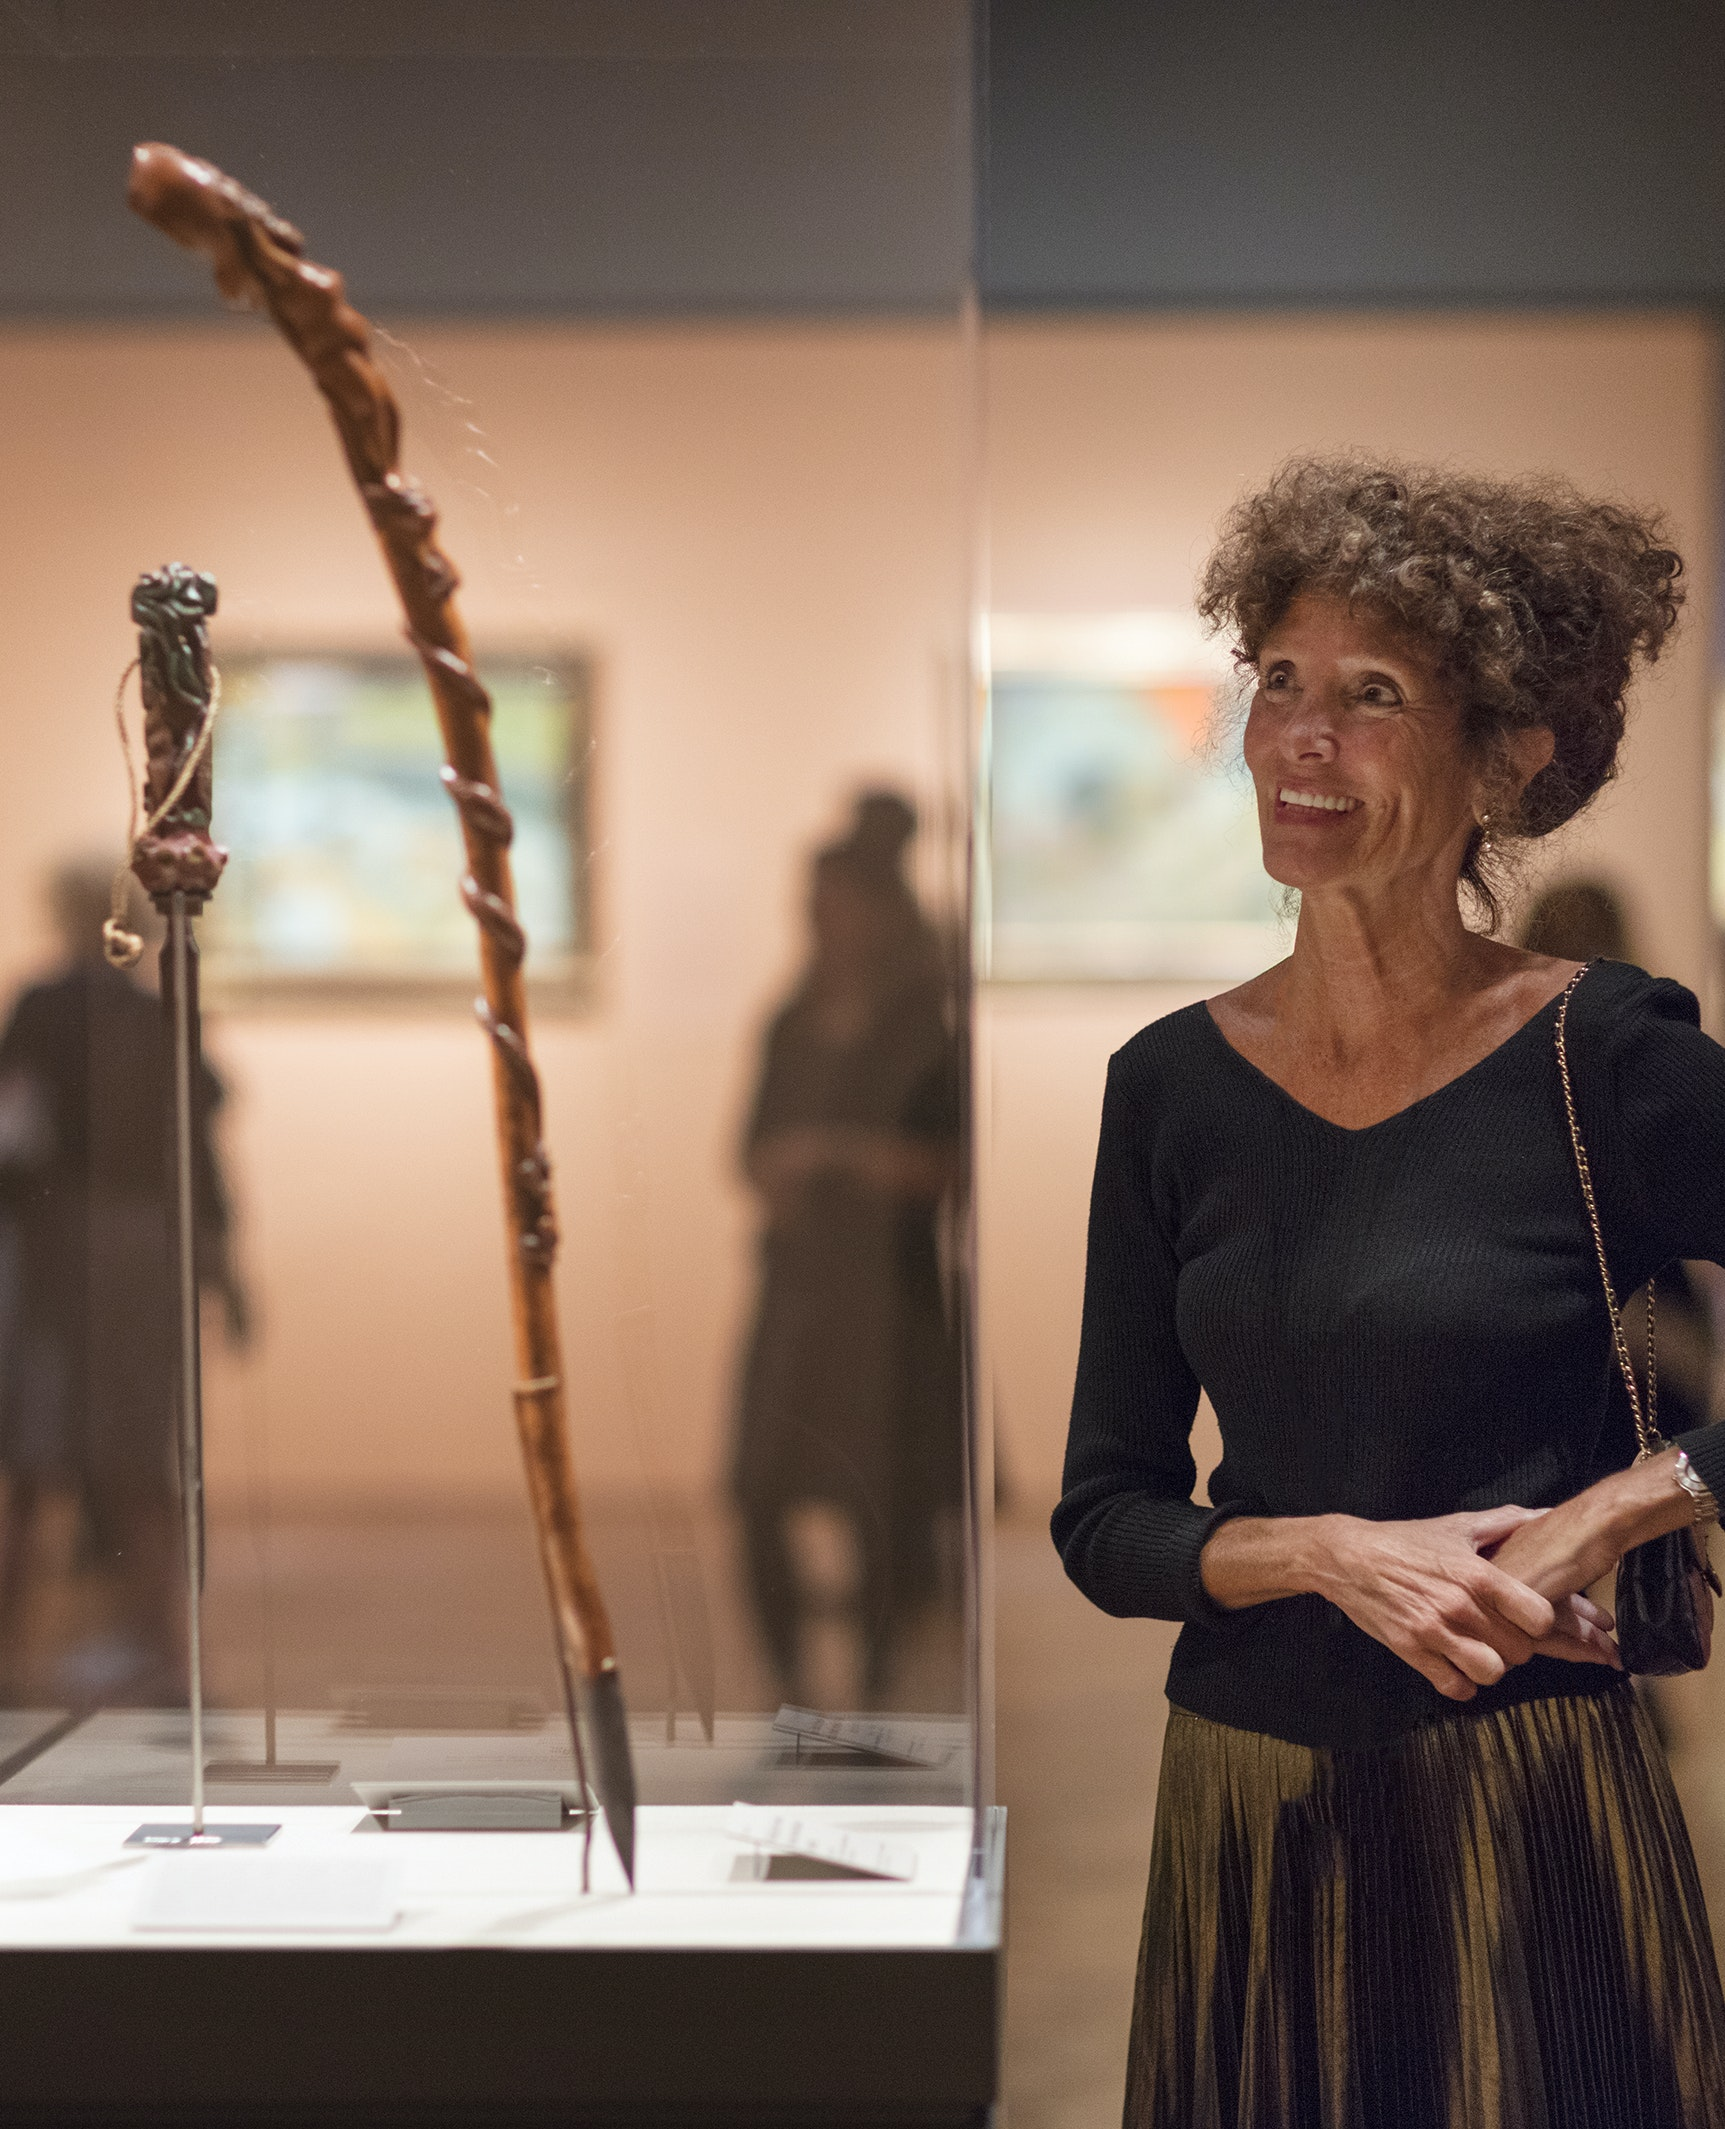 A photo of curator Gloria Groom dressed in a black shirt and green metallic skirt looking at an object in a glass case.